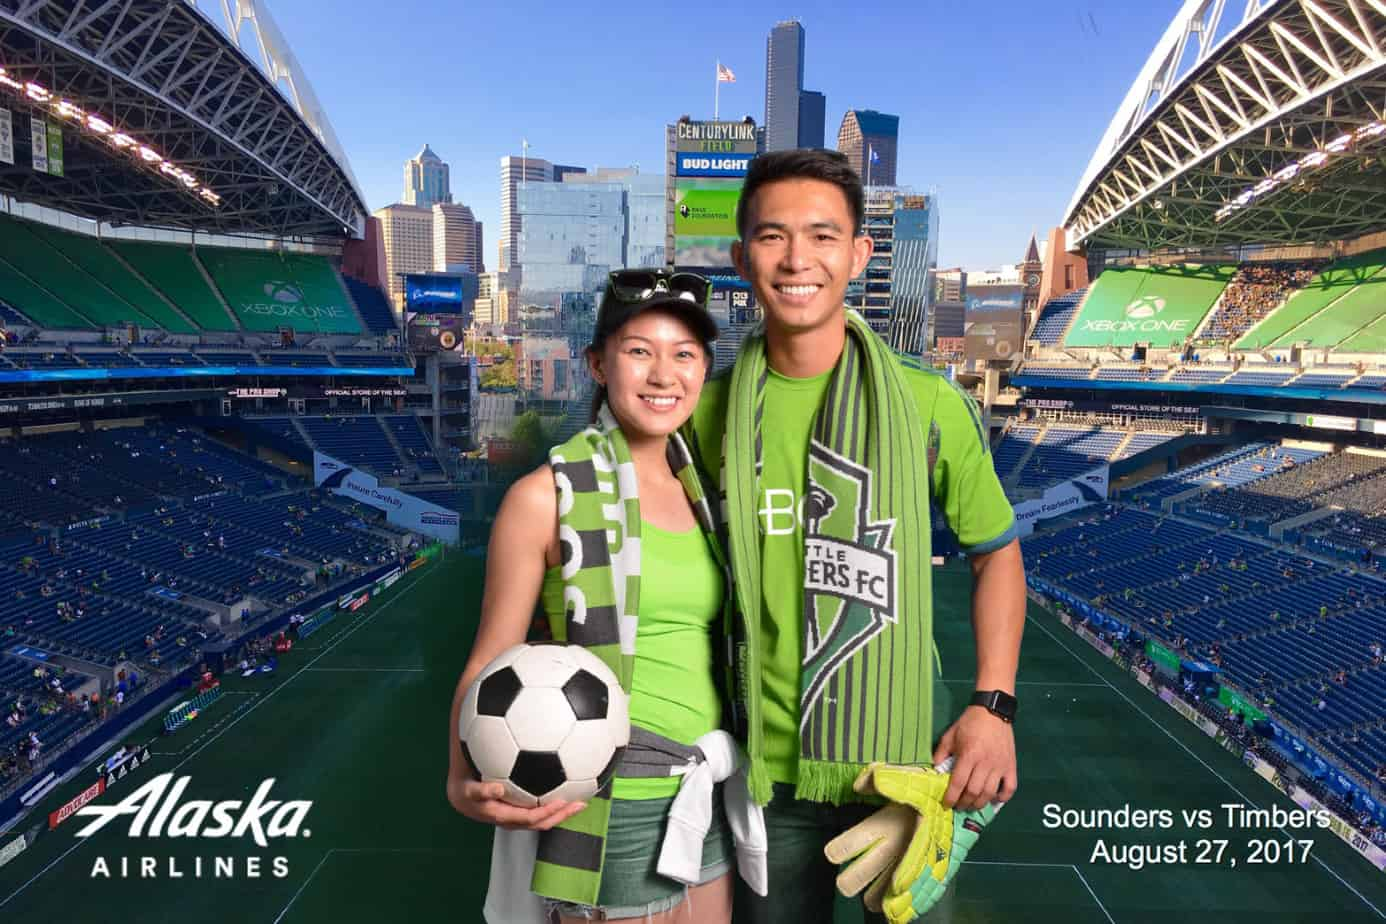 Man and a Women posing at Century Link field in Seattle during a soccer match.